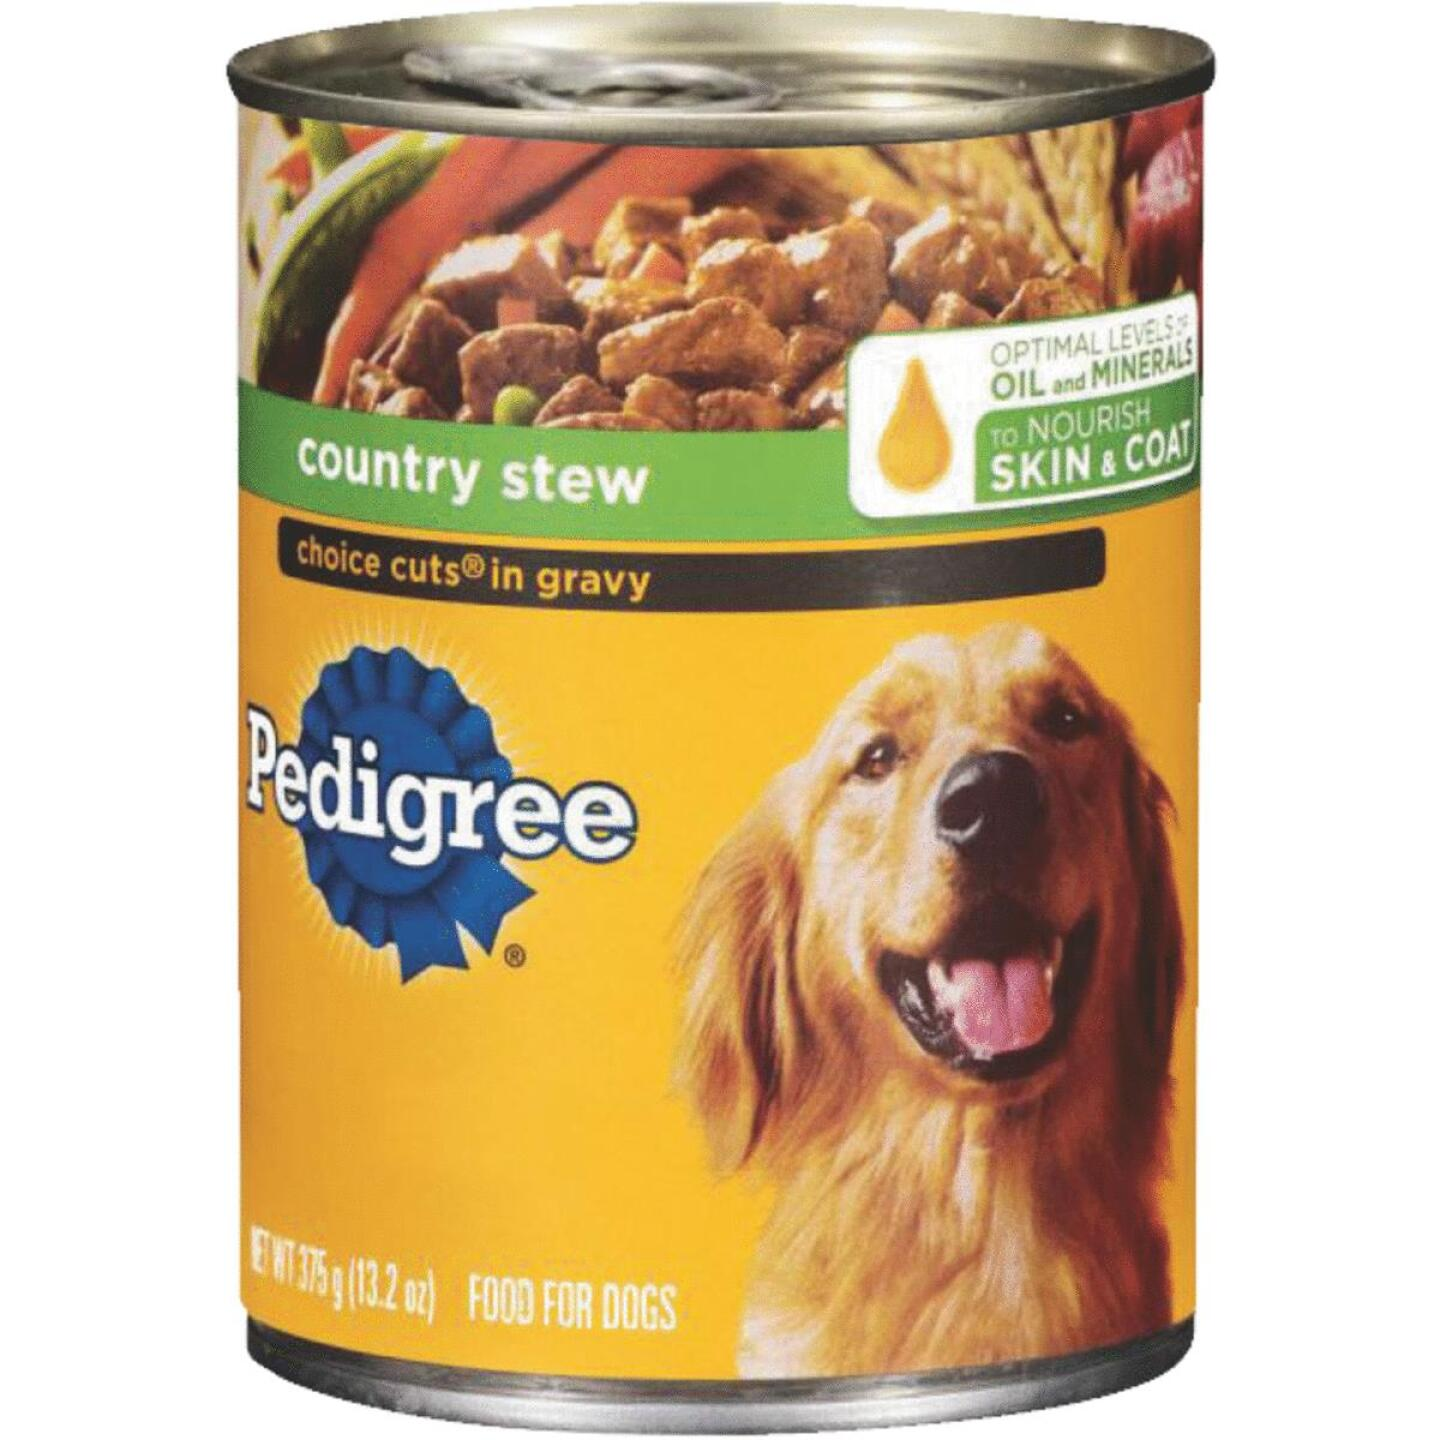 Pedigree Choice Cuts in Gravy Country Stew Wet Dog Food, 13.2 Oz. Image 1